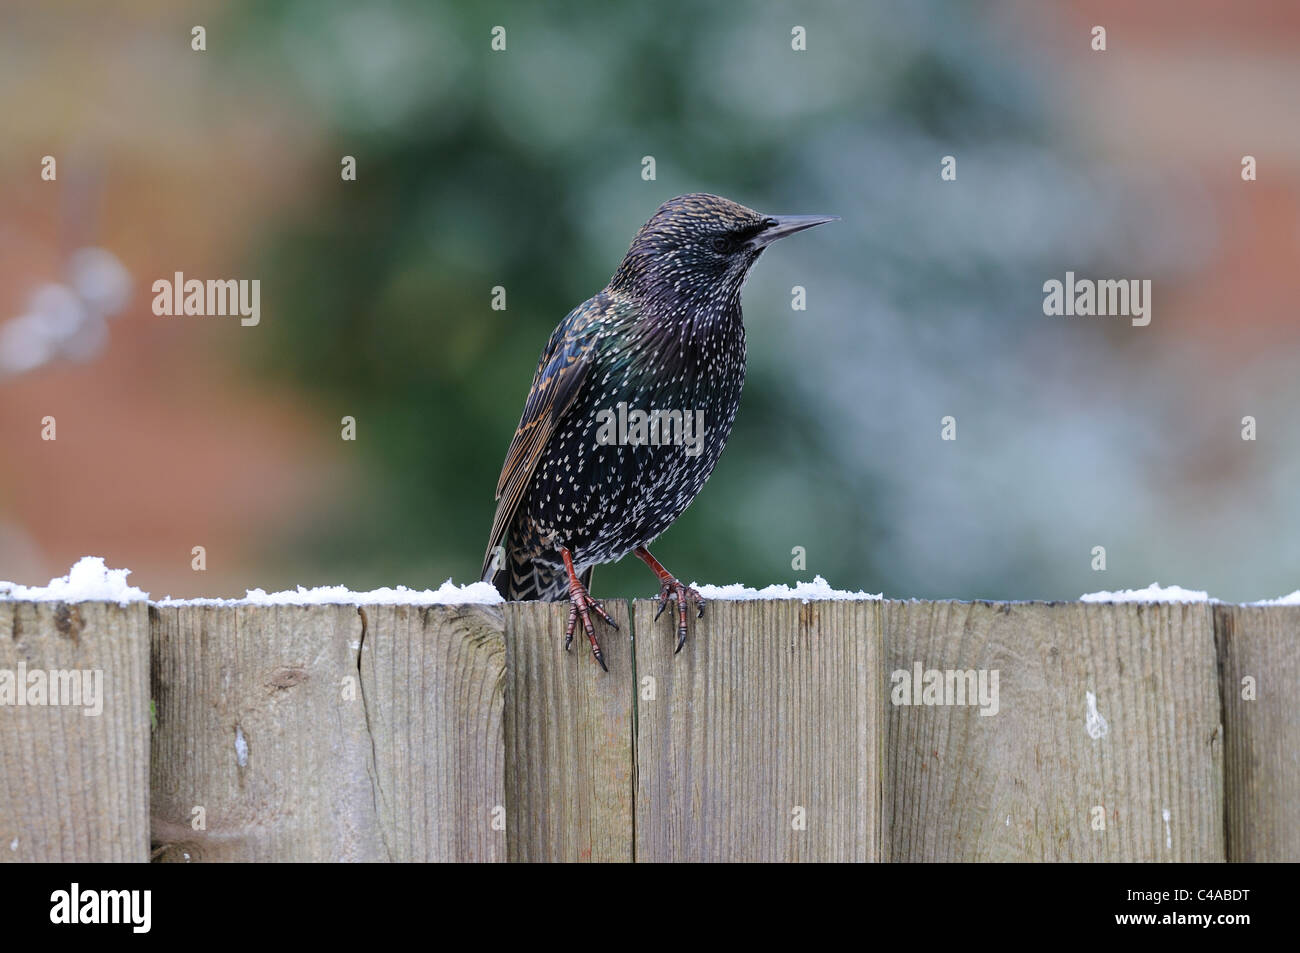 Common starling perching on a fence in winter Stock Photo